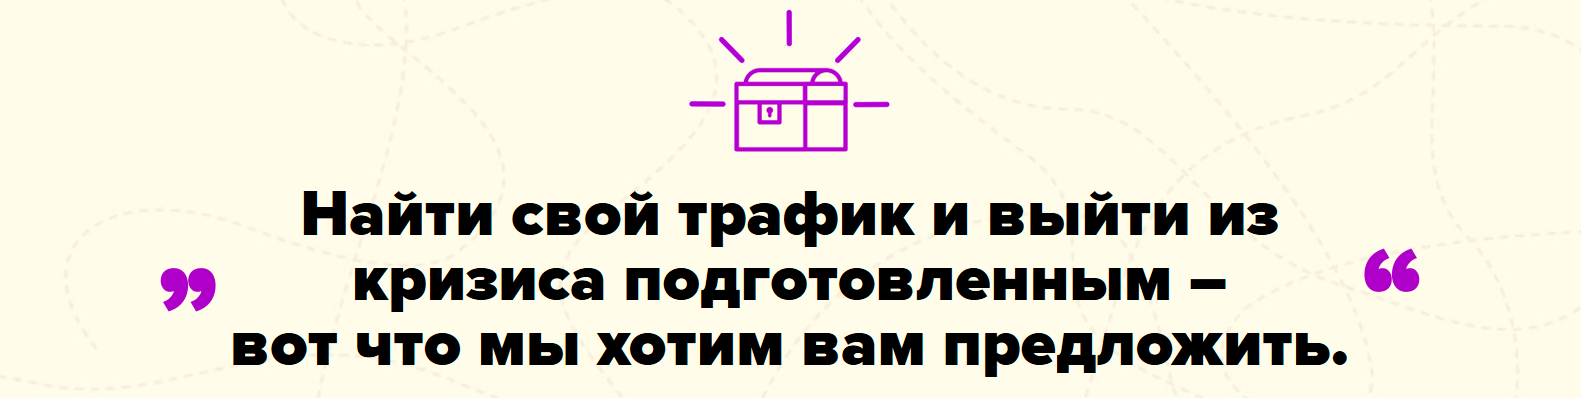 find-trafic-krizis-6.png